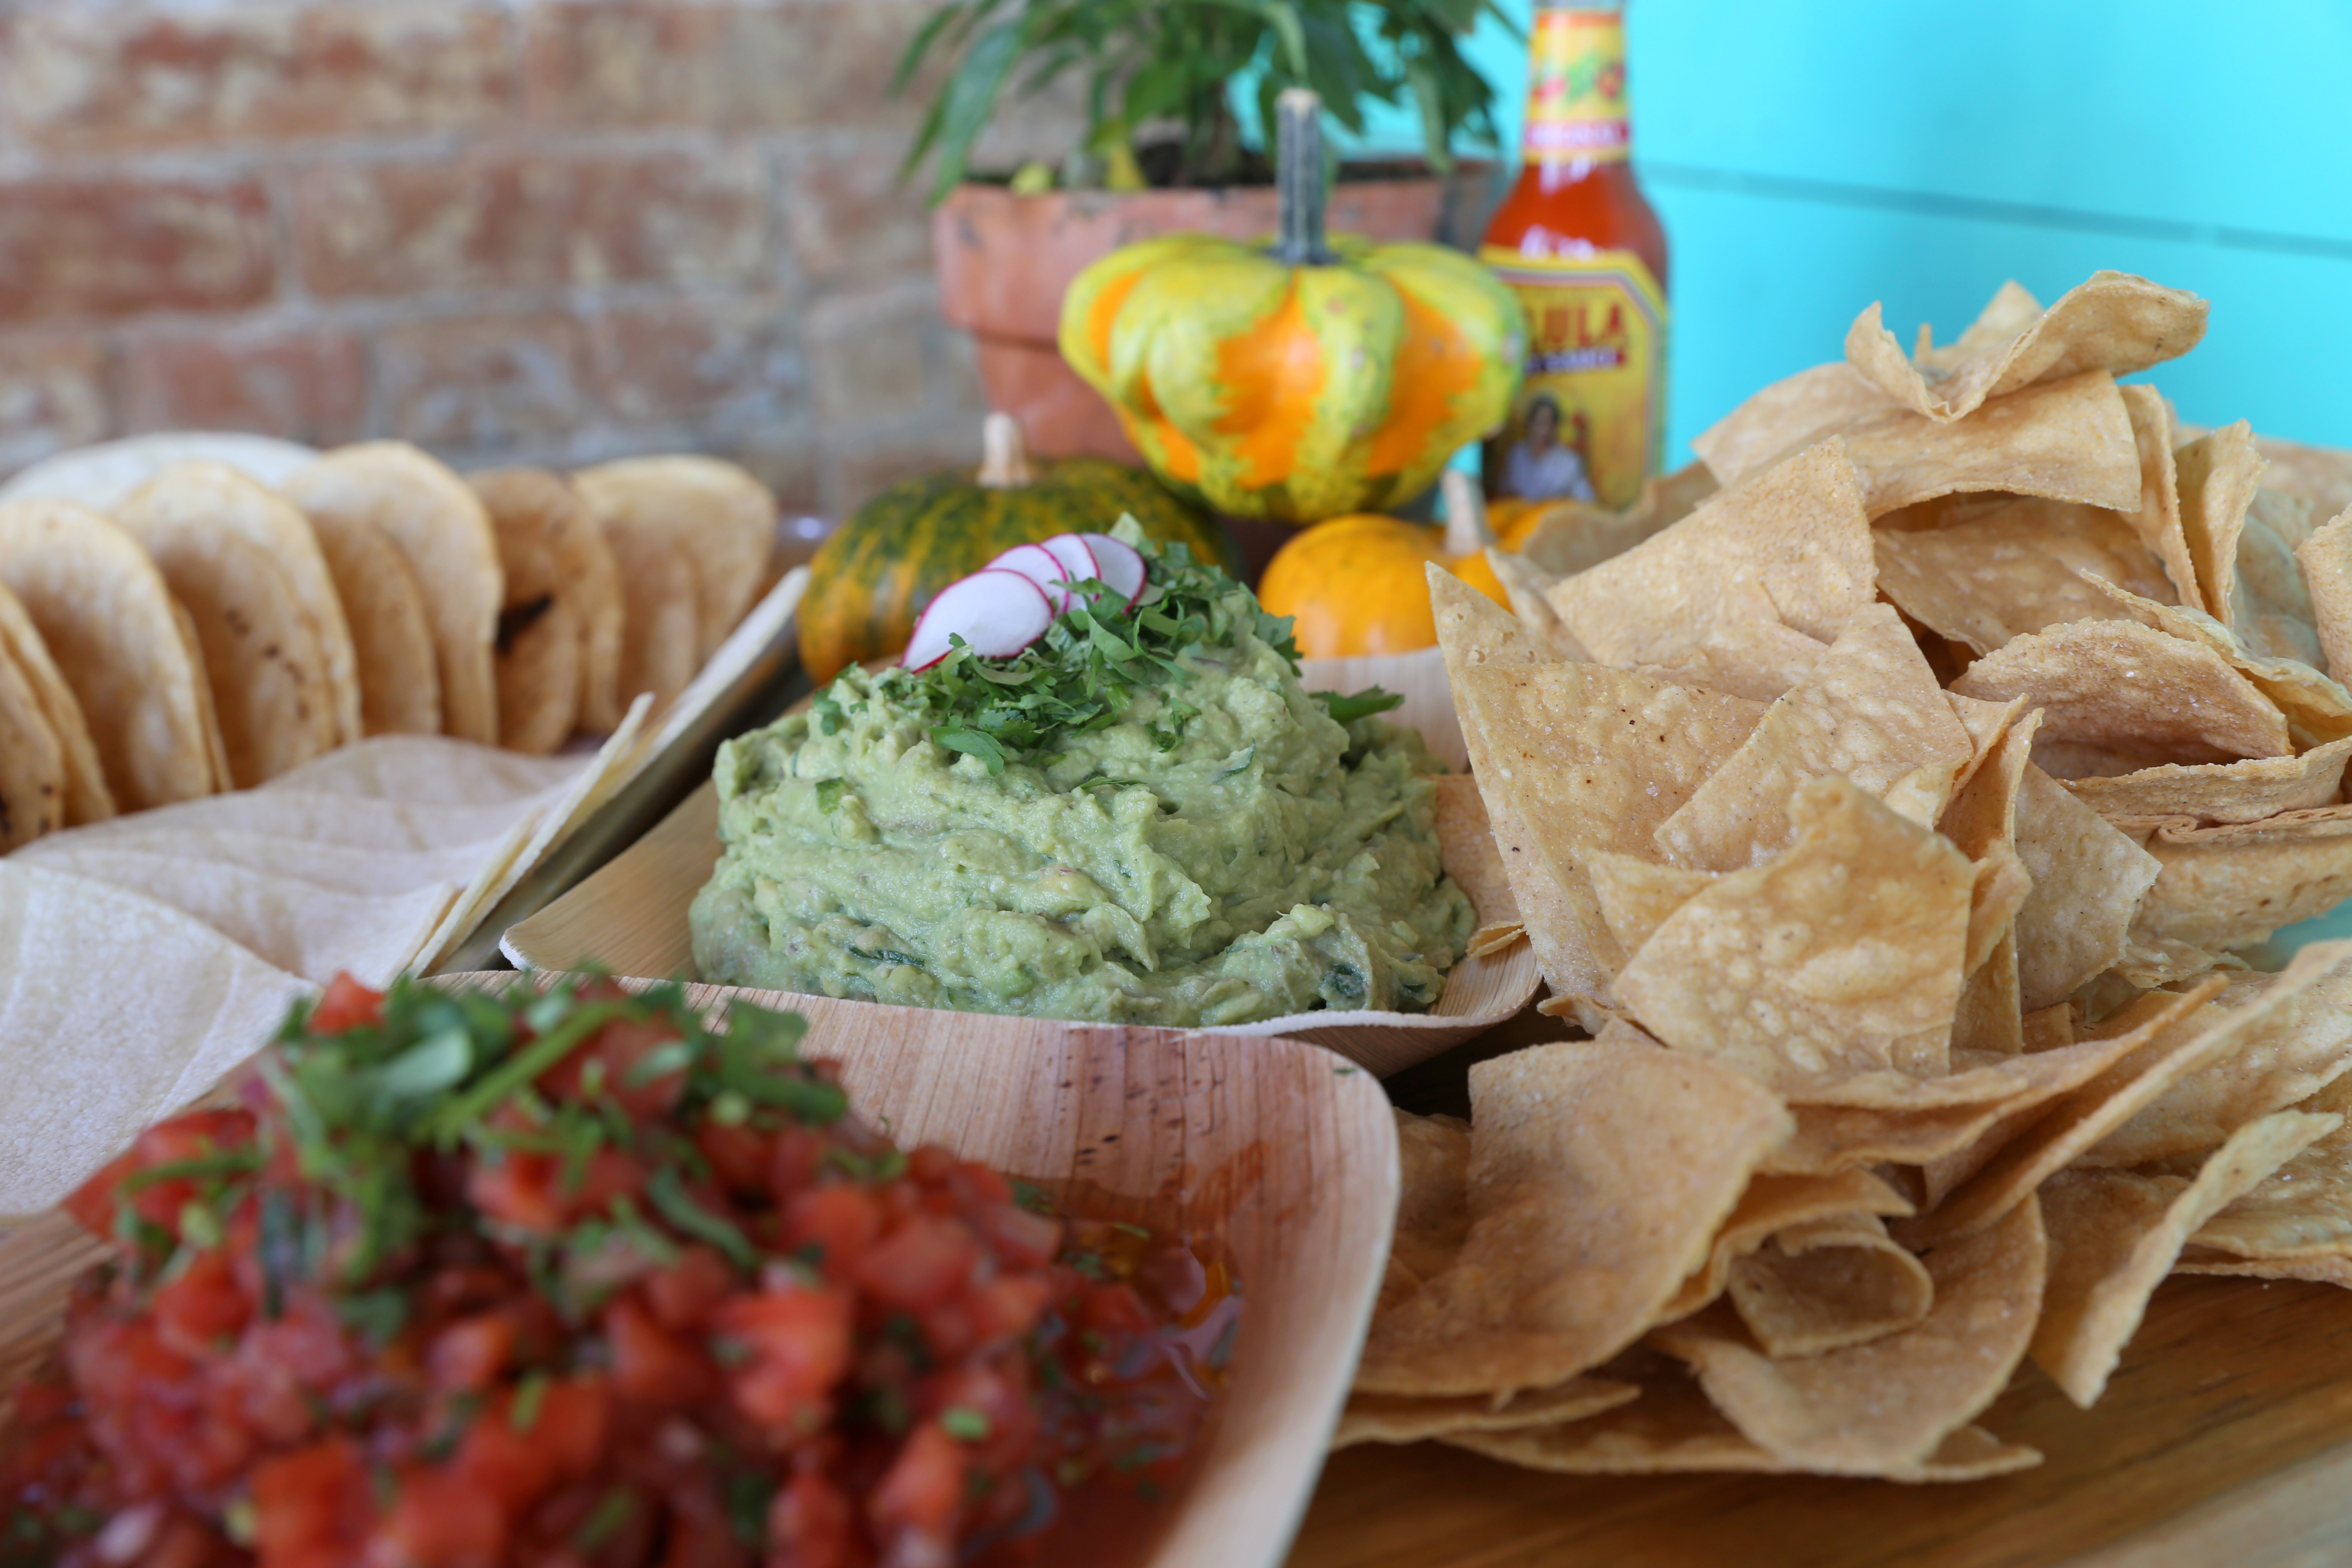 Guacamole at Taco Project in Tarrytown. Photo special to The Journal News.